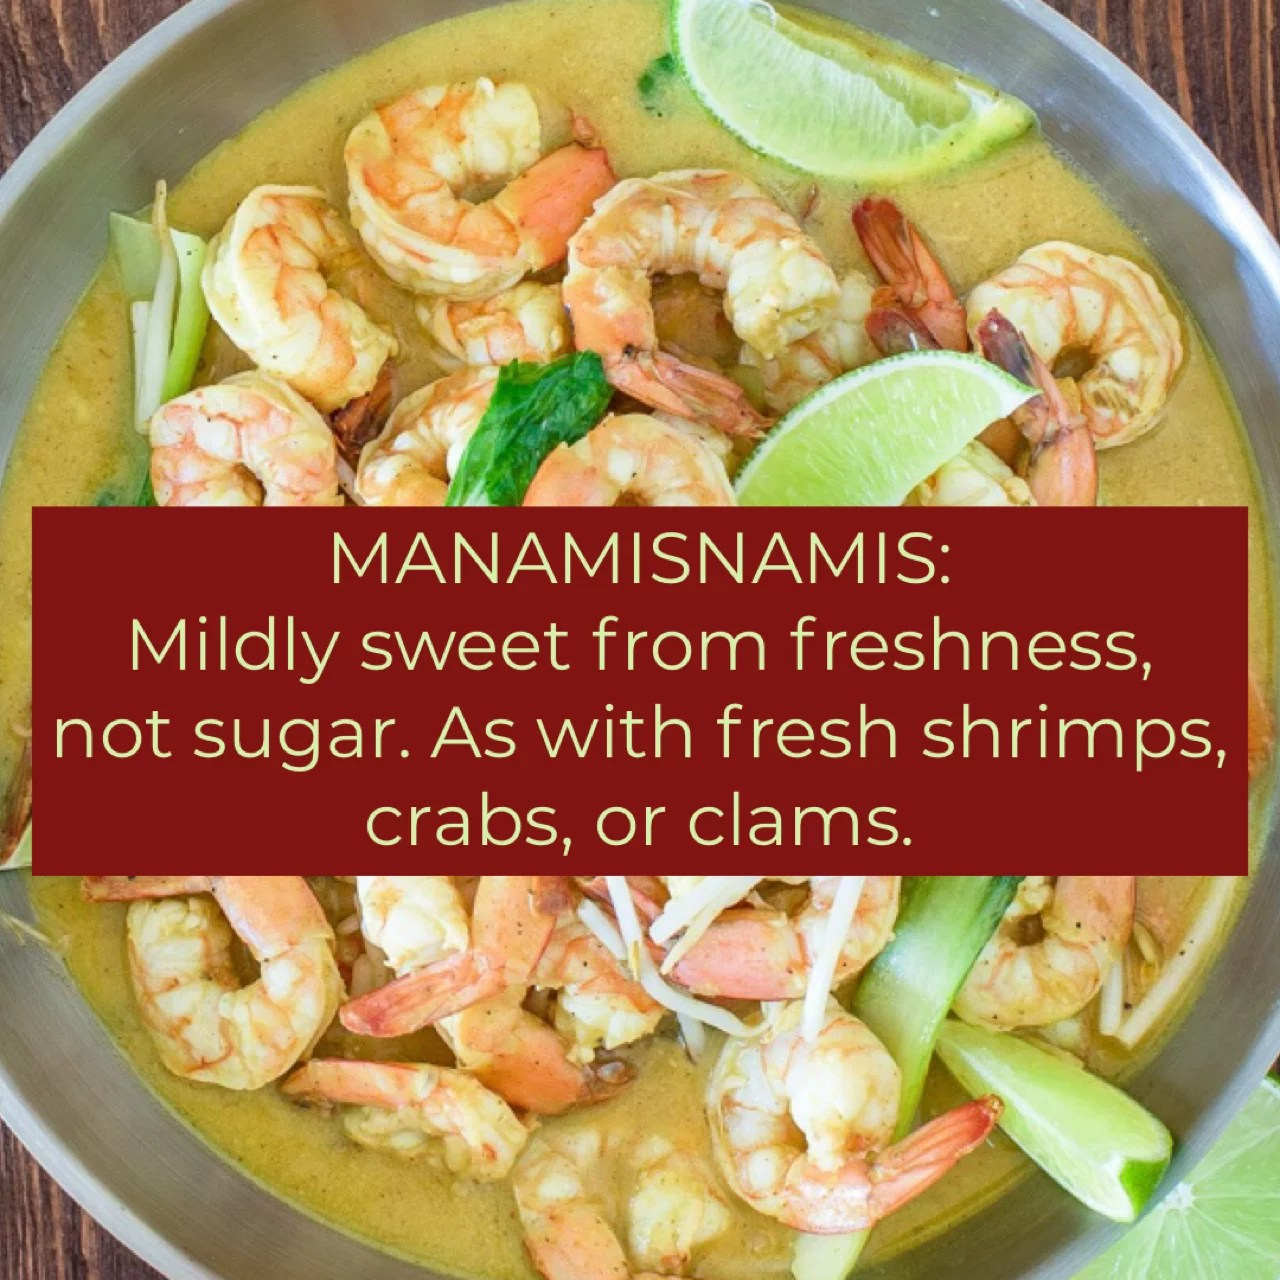 Manamisnamis: Mildy sweet from freshness, not from added sugar.